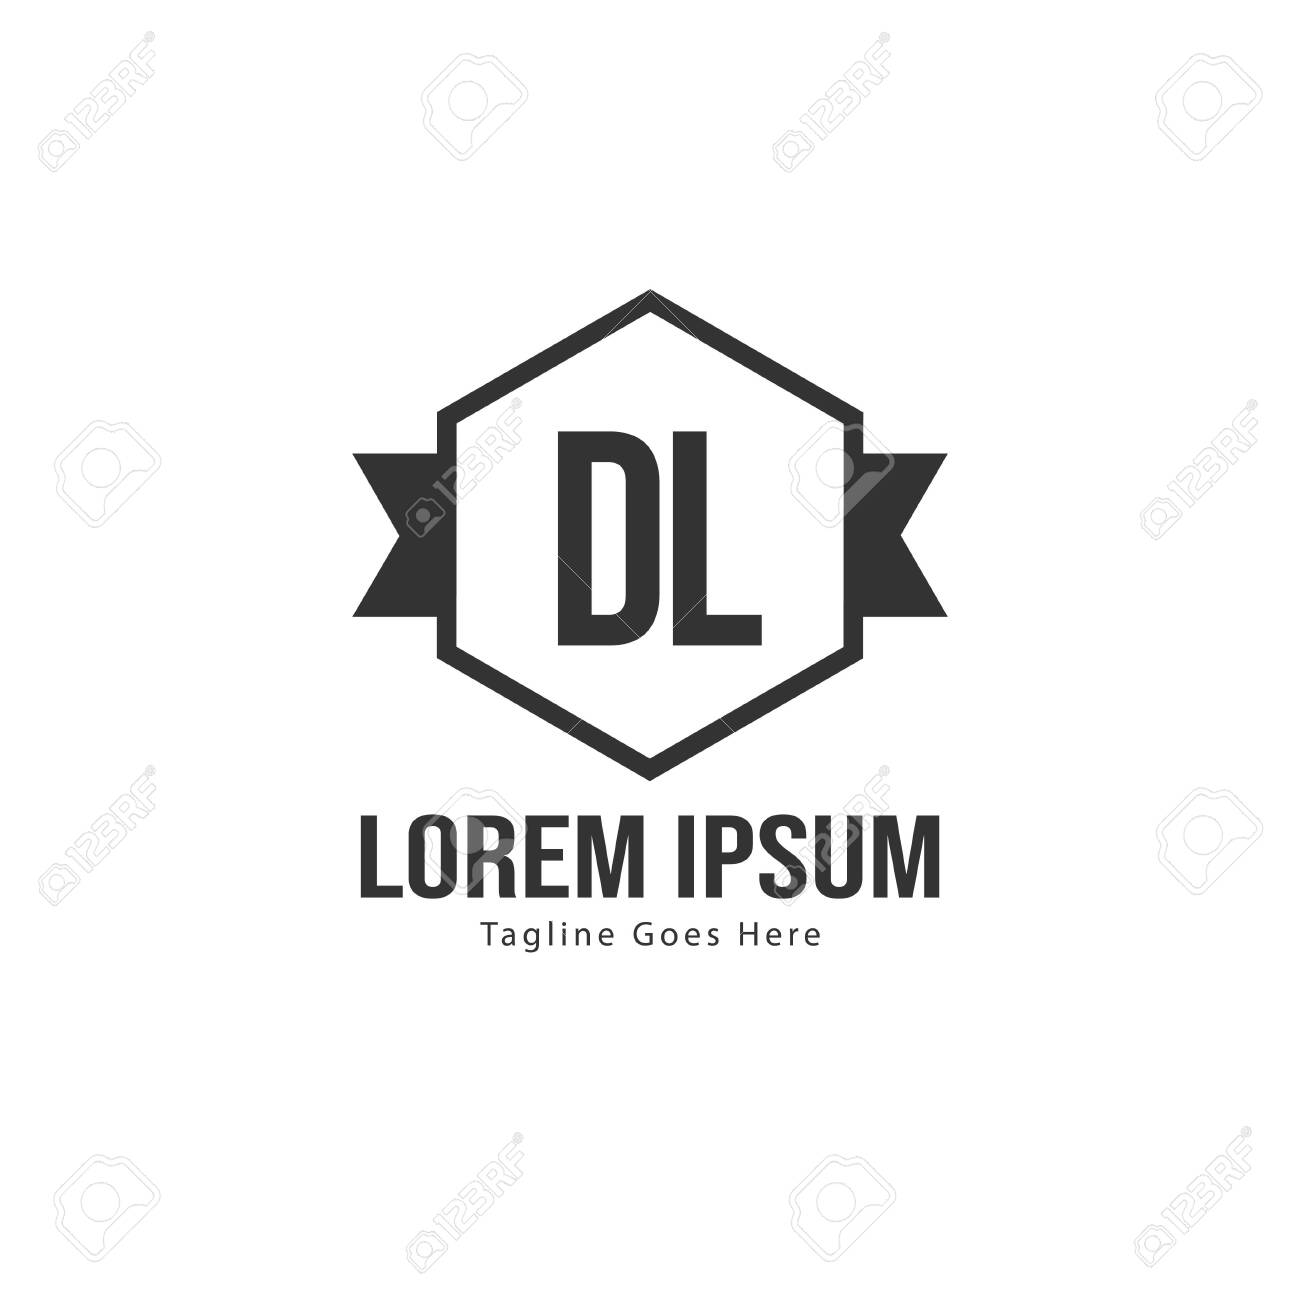 Initial Dl Logo Template With Modern Frame Minimalist Dl Letter Royalty Free Cliparts Vectors And Stock Illustration Image 129891419